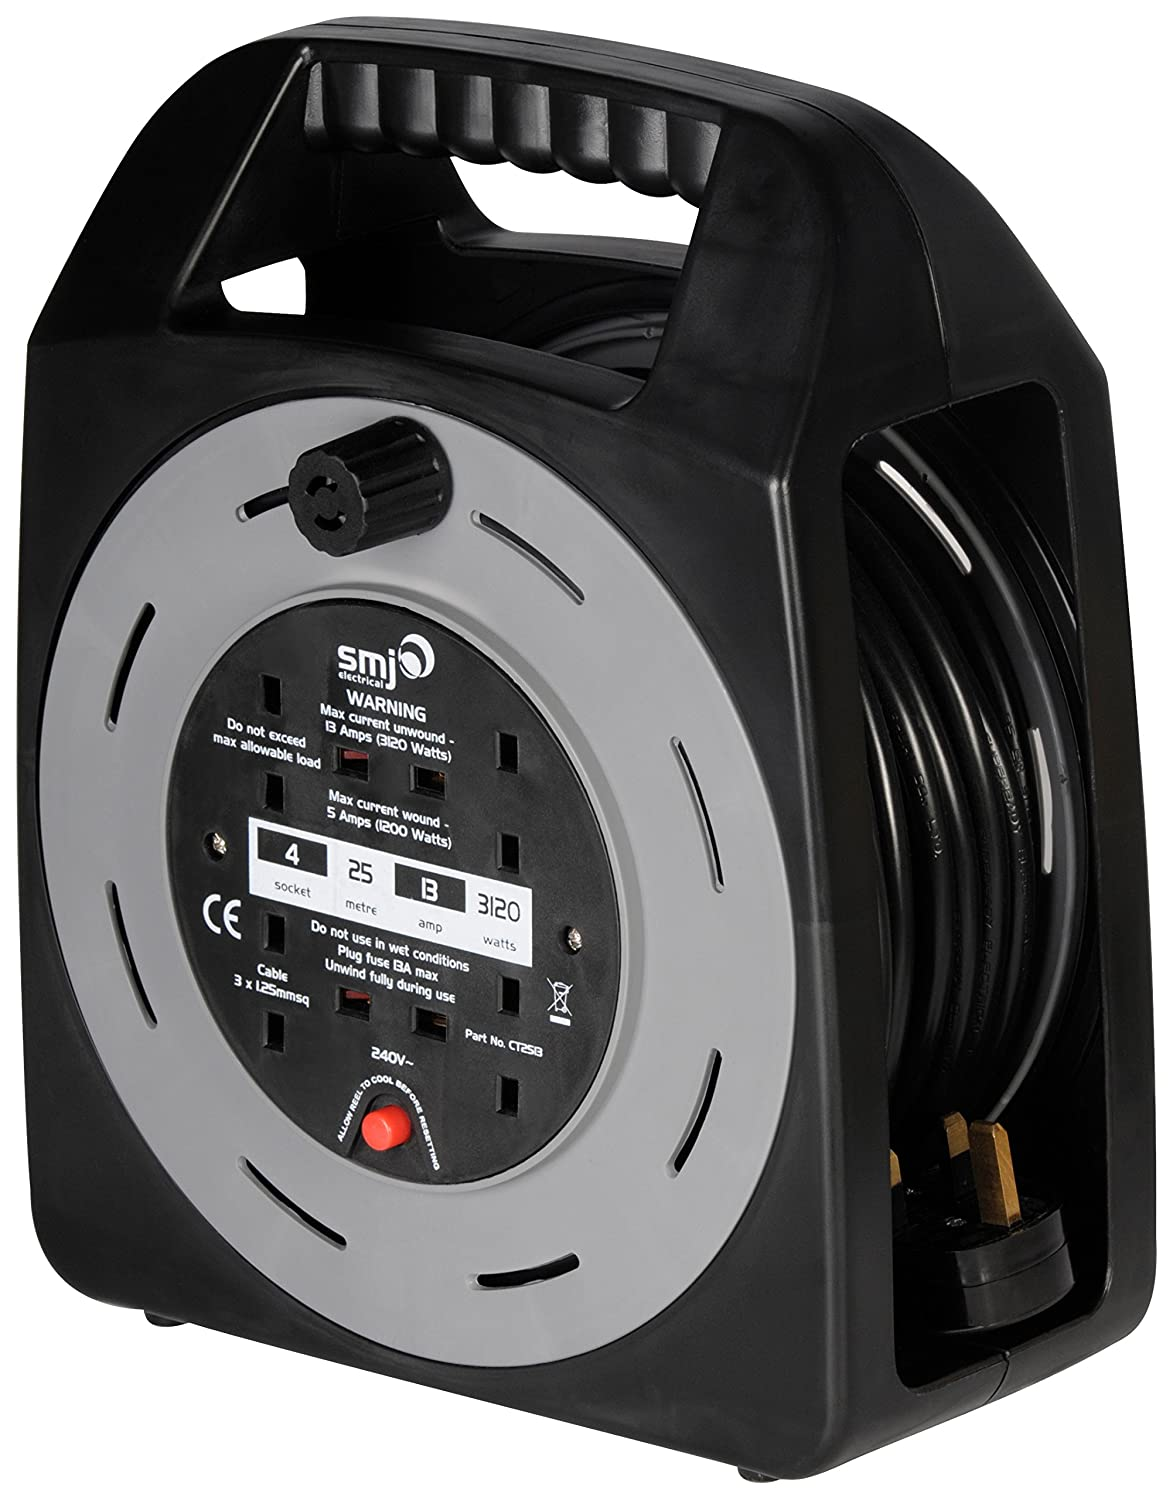 SMJ Electrical CT2513 Cable Reel 13 A 4 Socket with Thermal Cutout of 25 m, metre